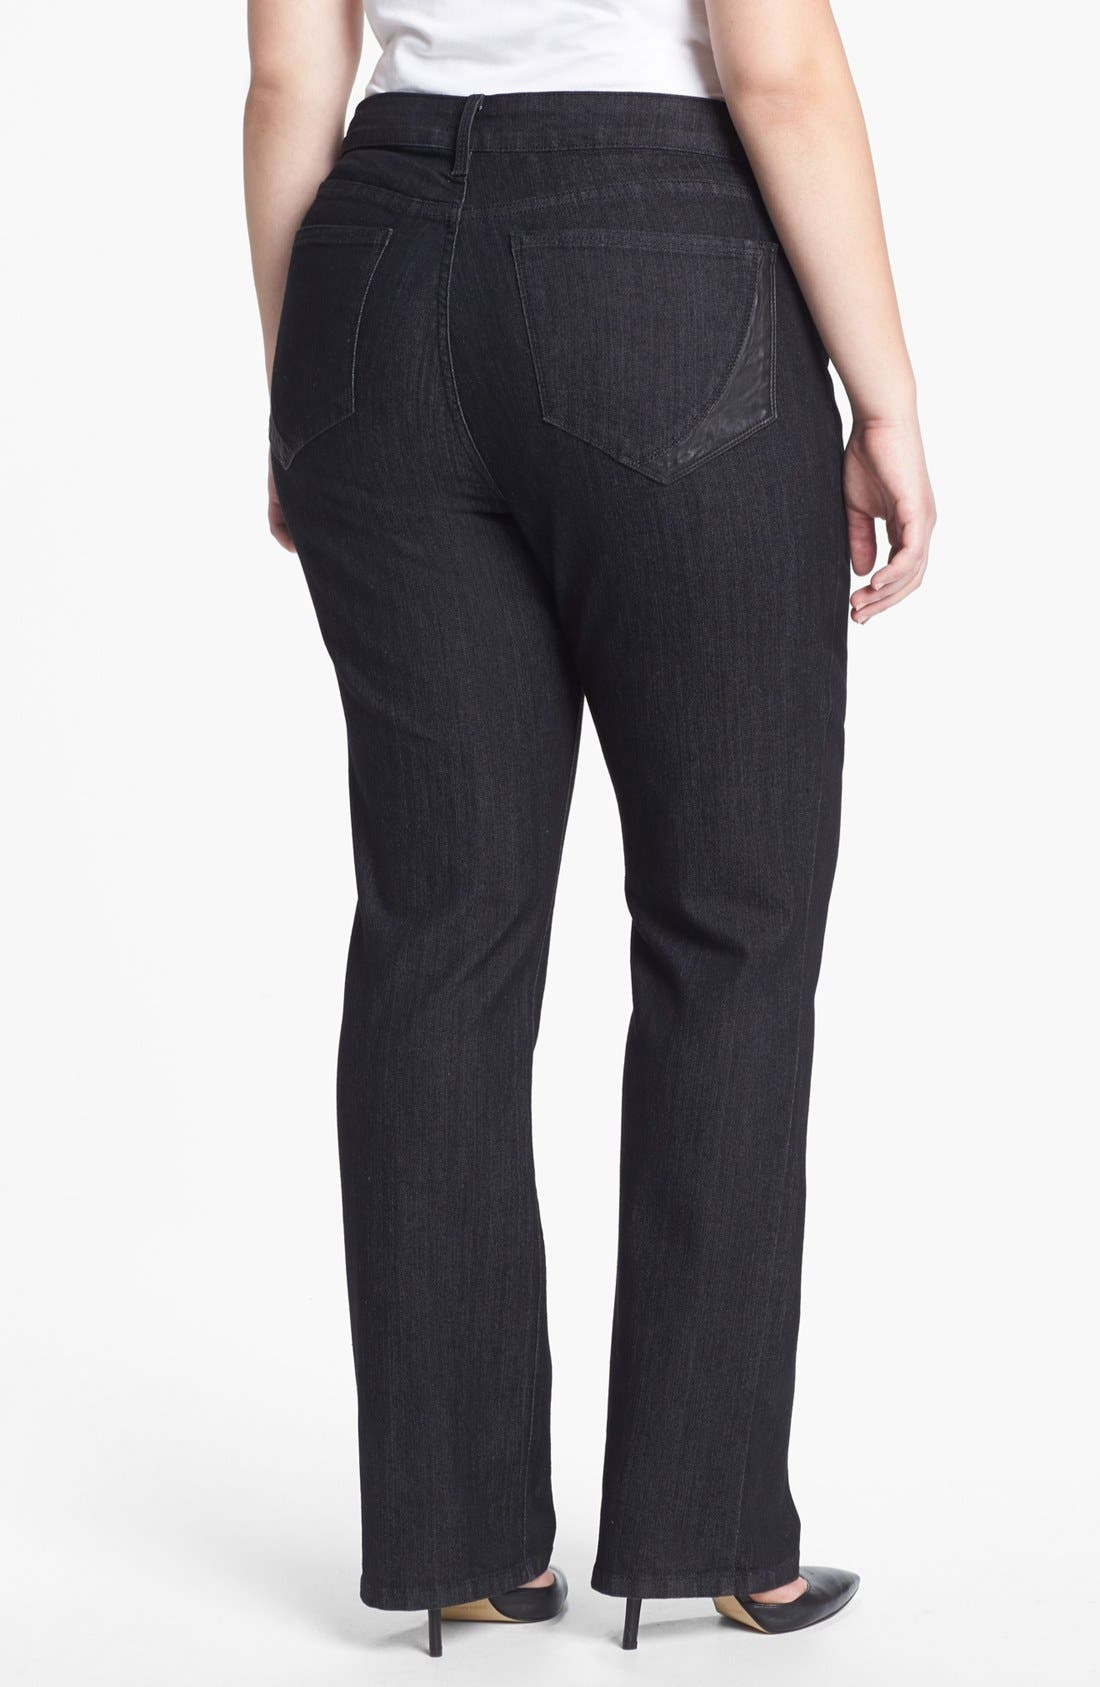 Alternate Image 1 Selected - NYDJ 'Marilyn' Faux Leather Detail Straight Leg Jeans (Plus Size)